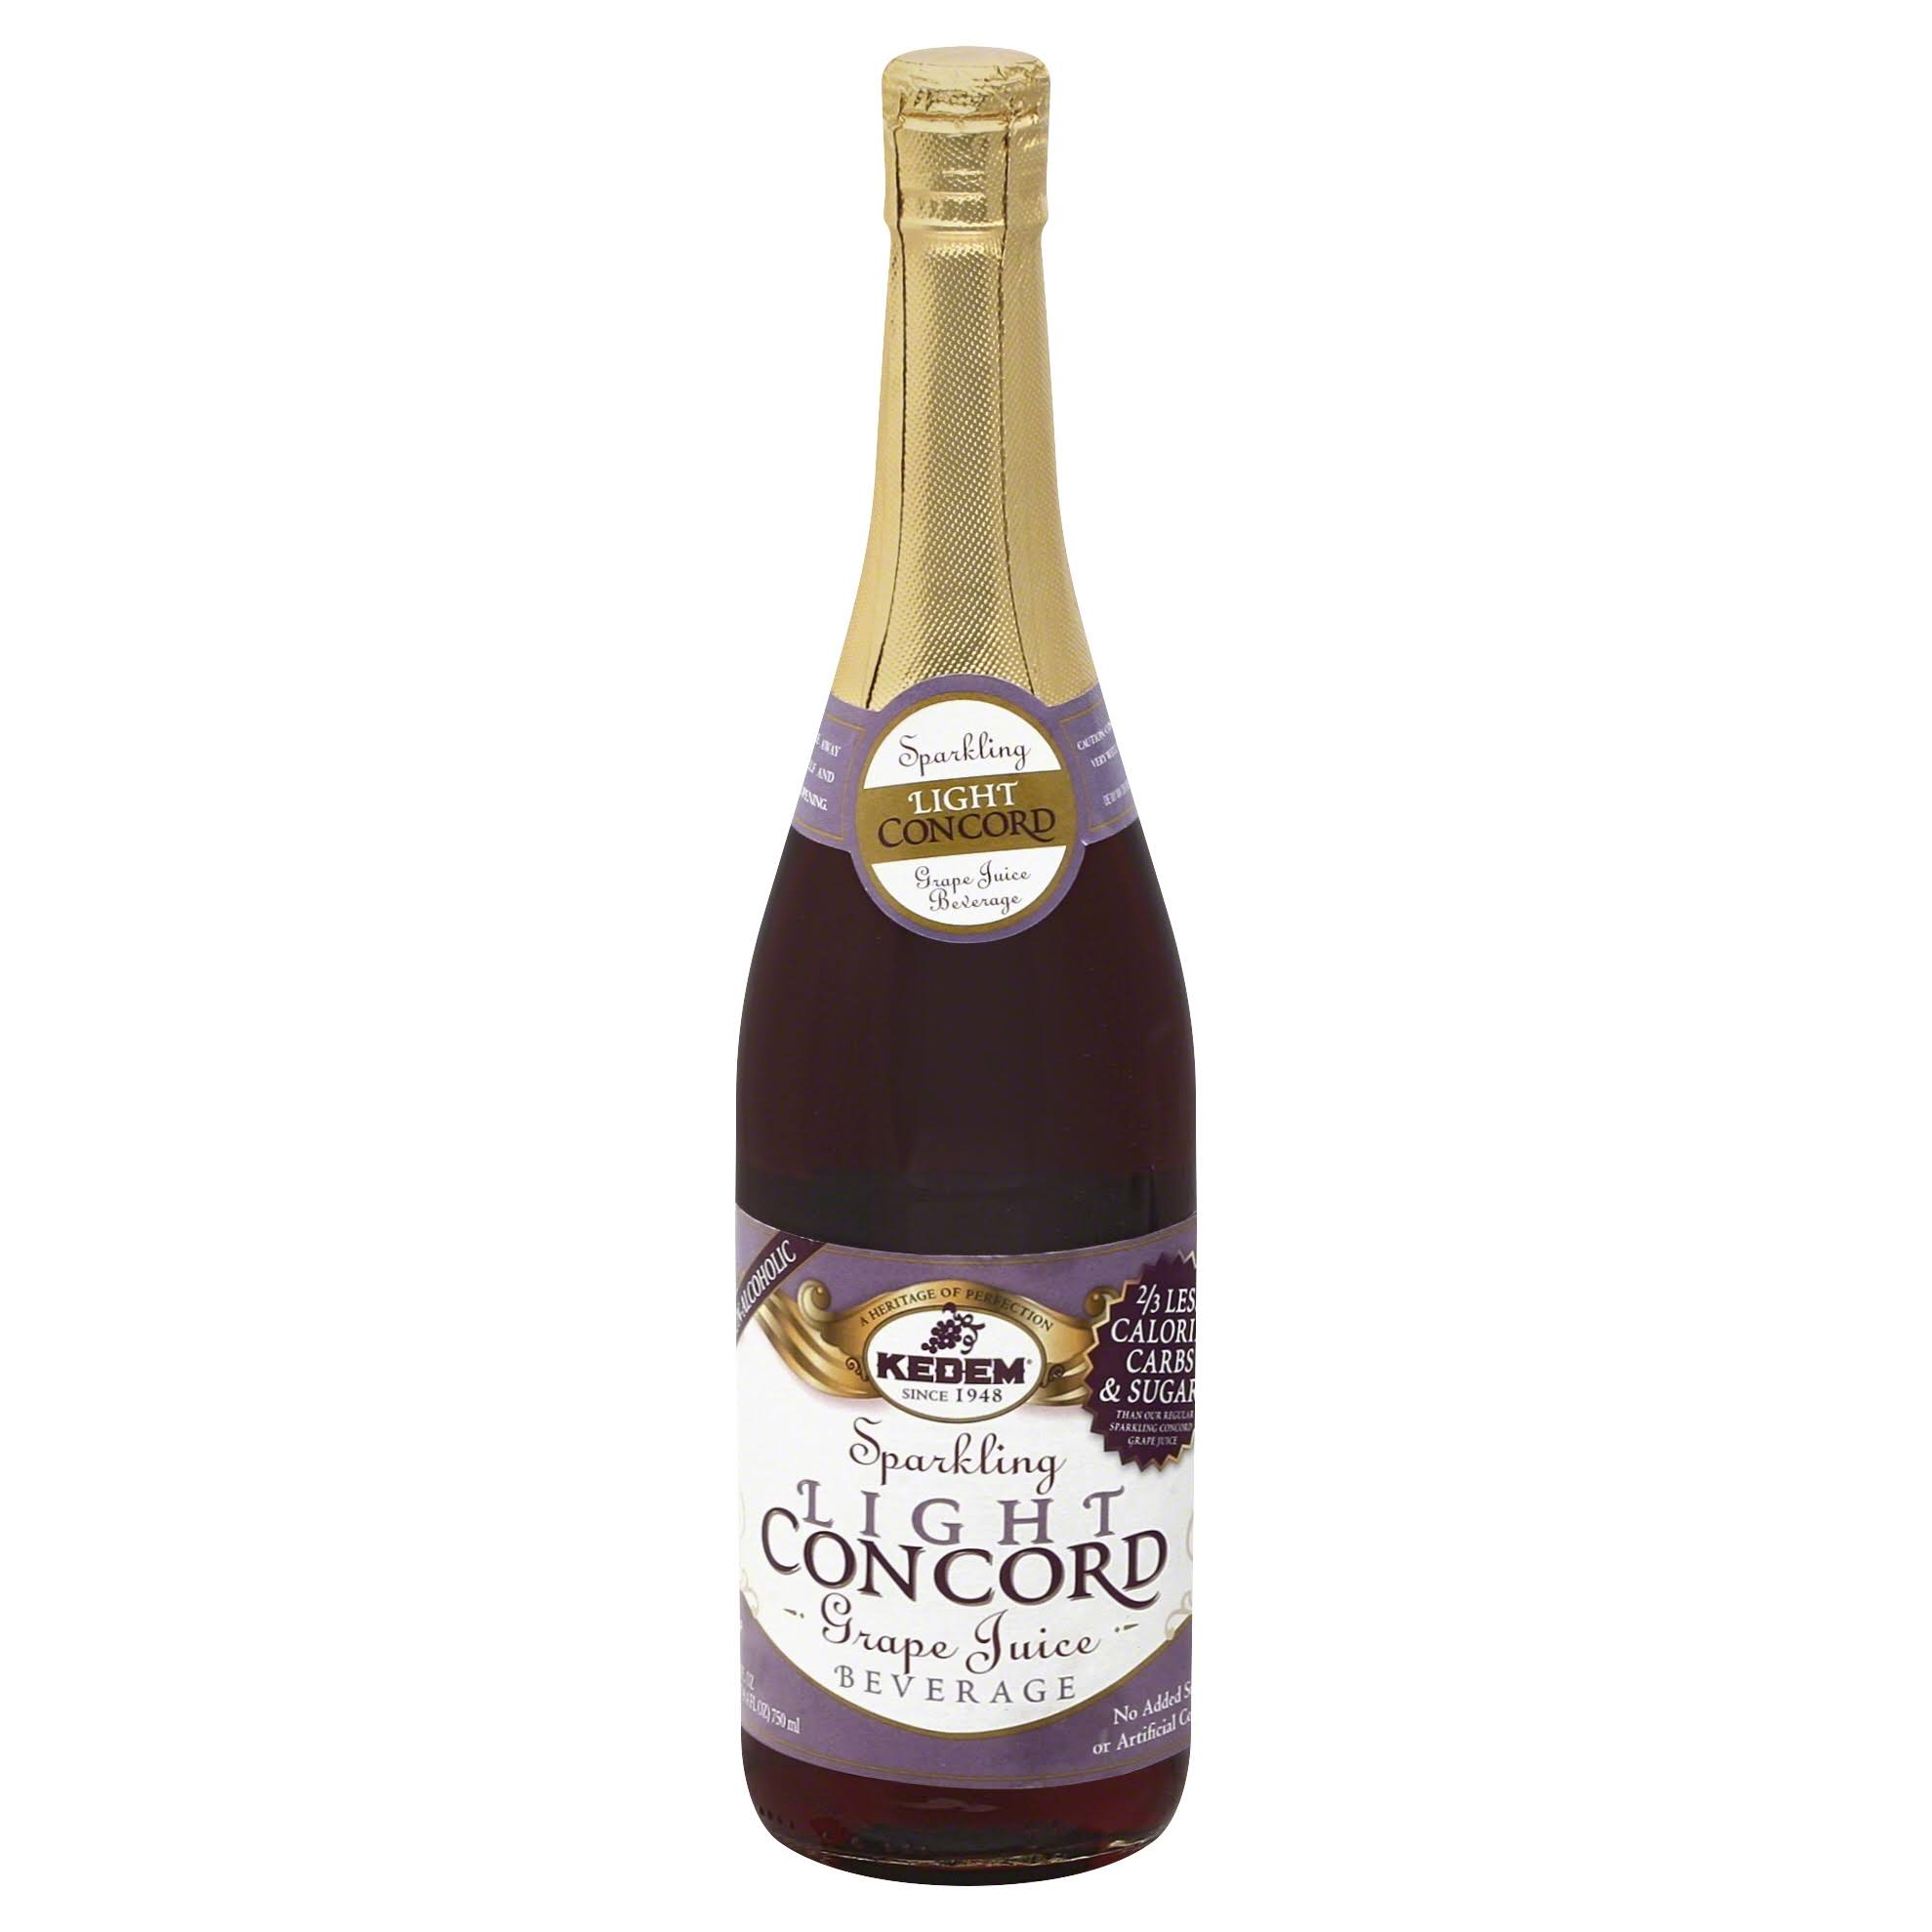 Kedem Grape Juice, Concord, Sparkling Beverage, Light - 25.4 fl oz